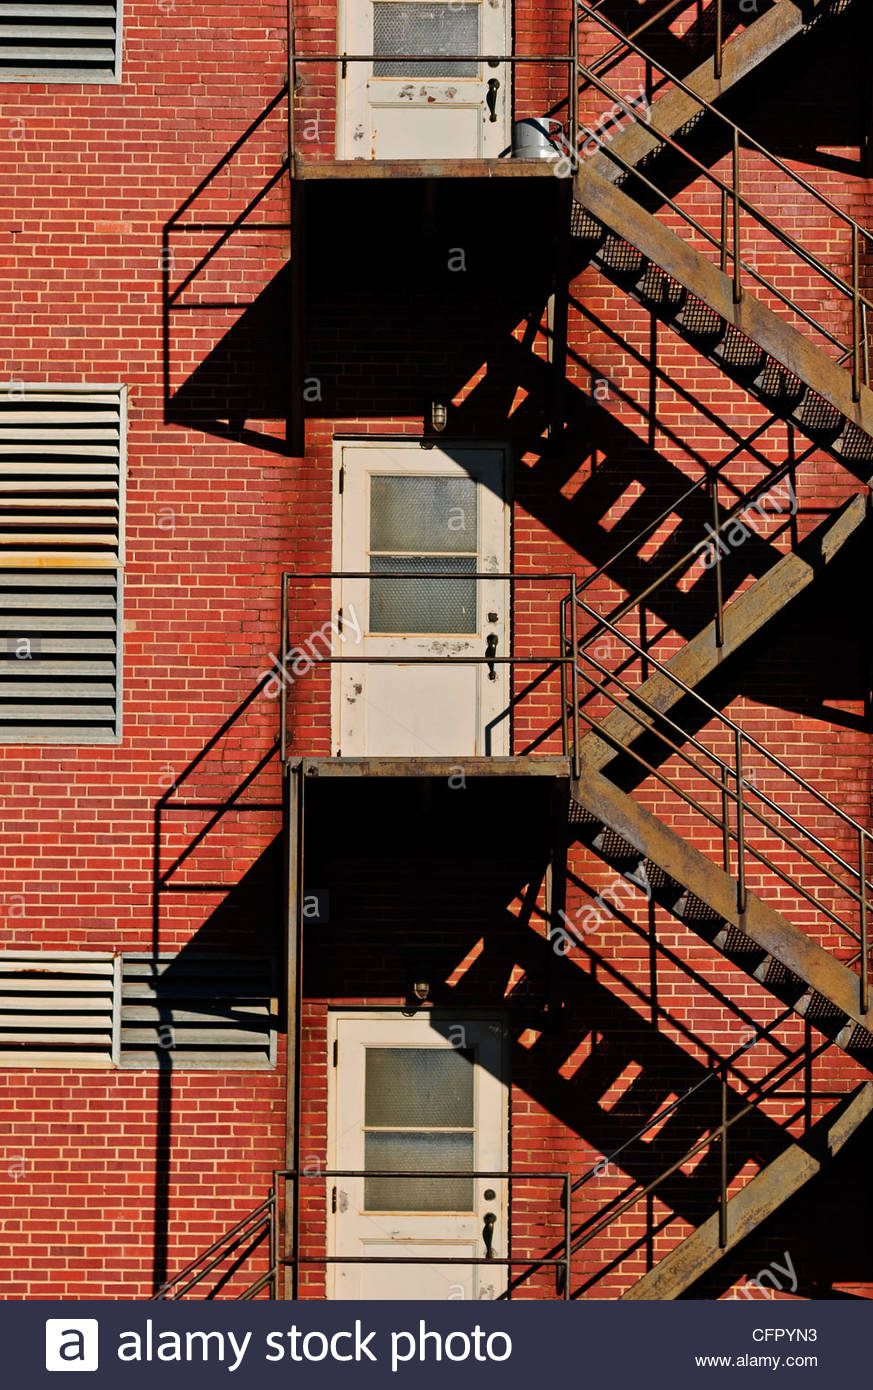 Fire escape on old building, Downtown Wichita Ks., Sept. 25 2011 - Stock Image